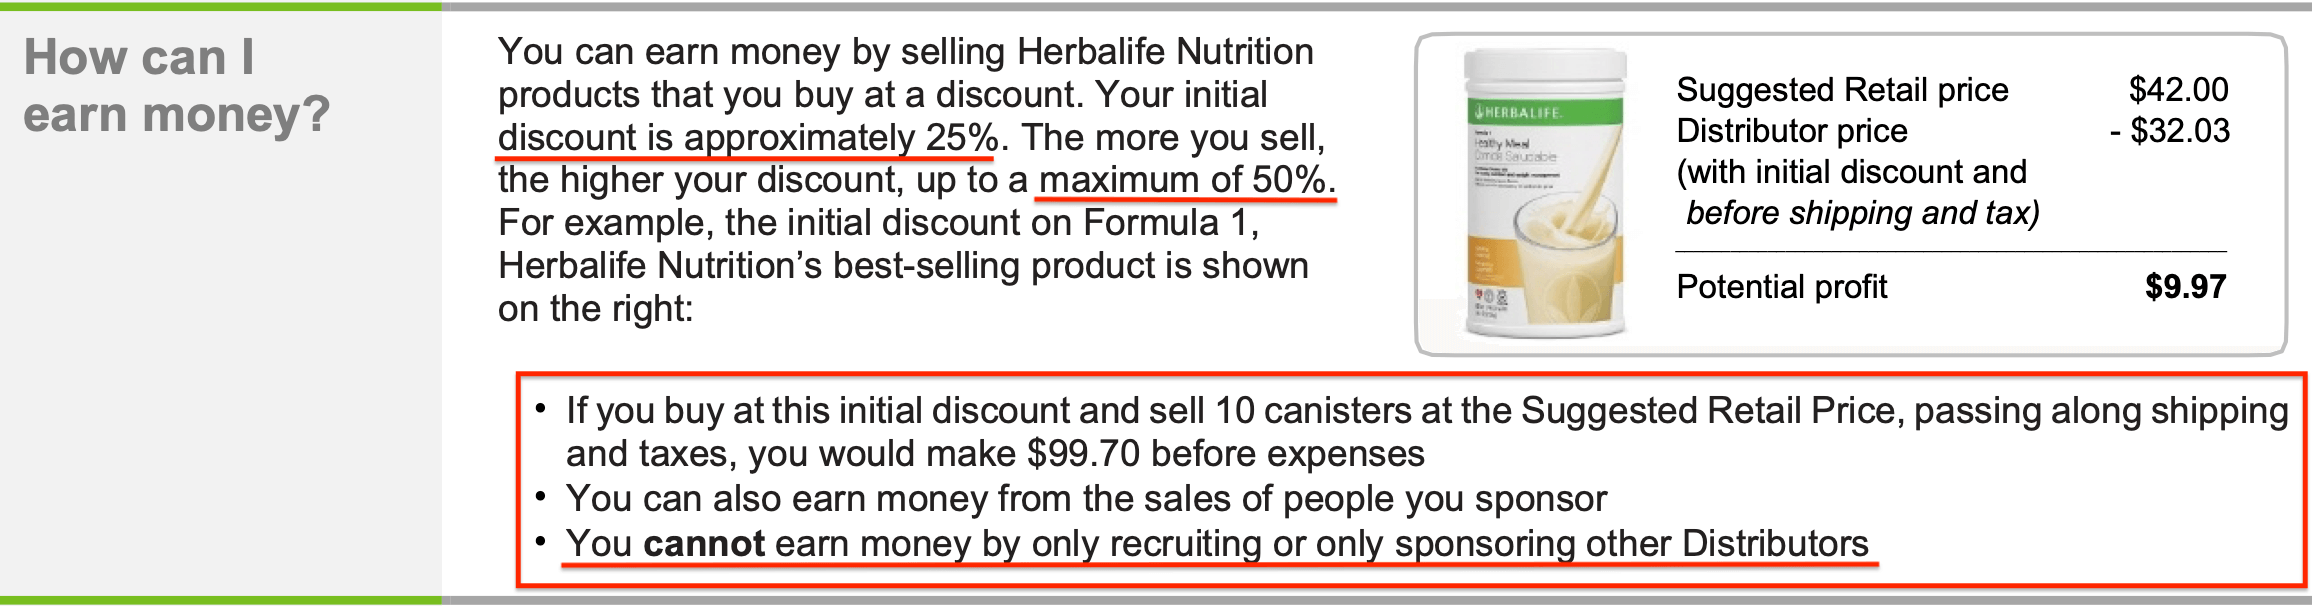 Can You Make Money Selling Herbalife Herbalife US Income Disclosure 2015_Retail Profit Commissions